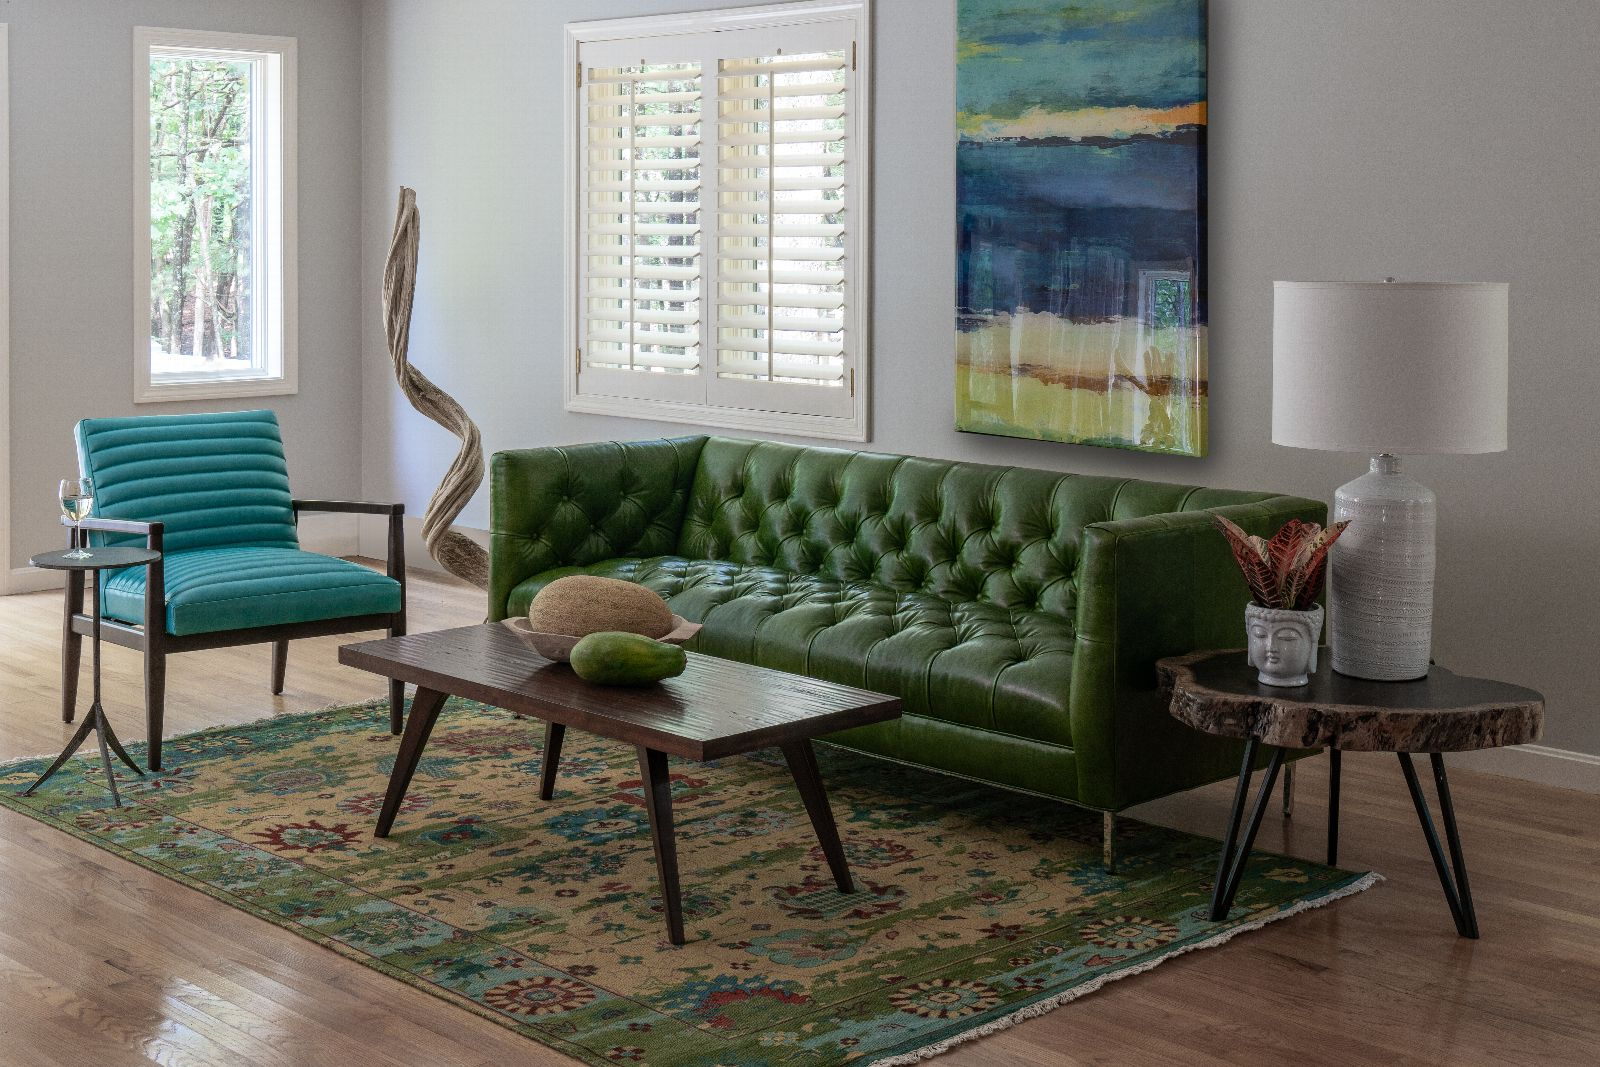 circle furniture  sectional vs sofa and chairs what's